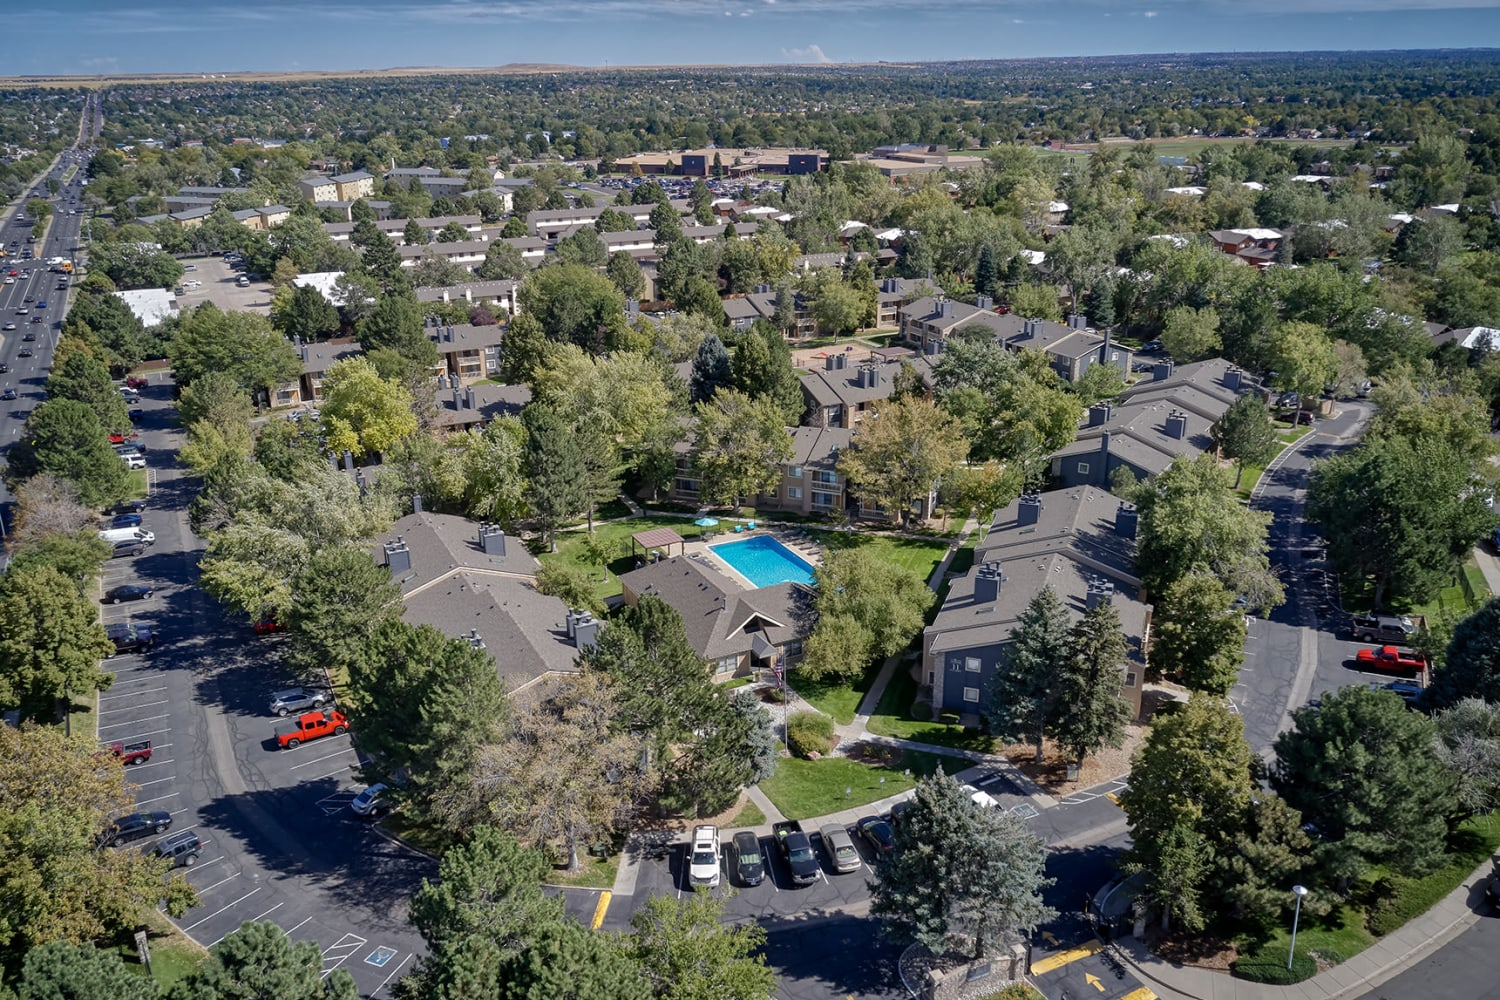 aerial photo of City Center Station Apartments in Aurora, Colorado